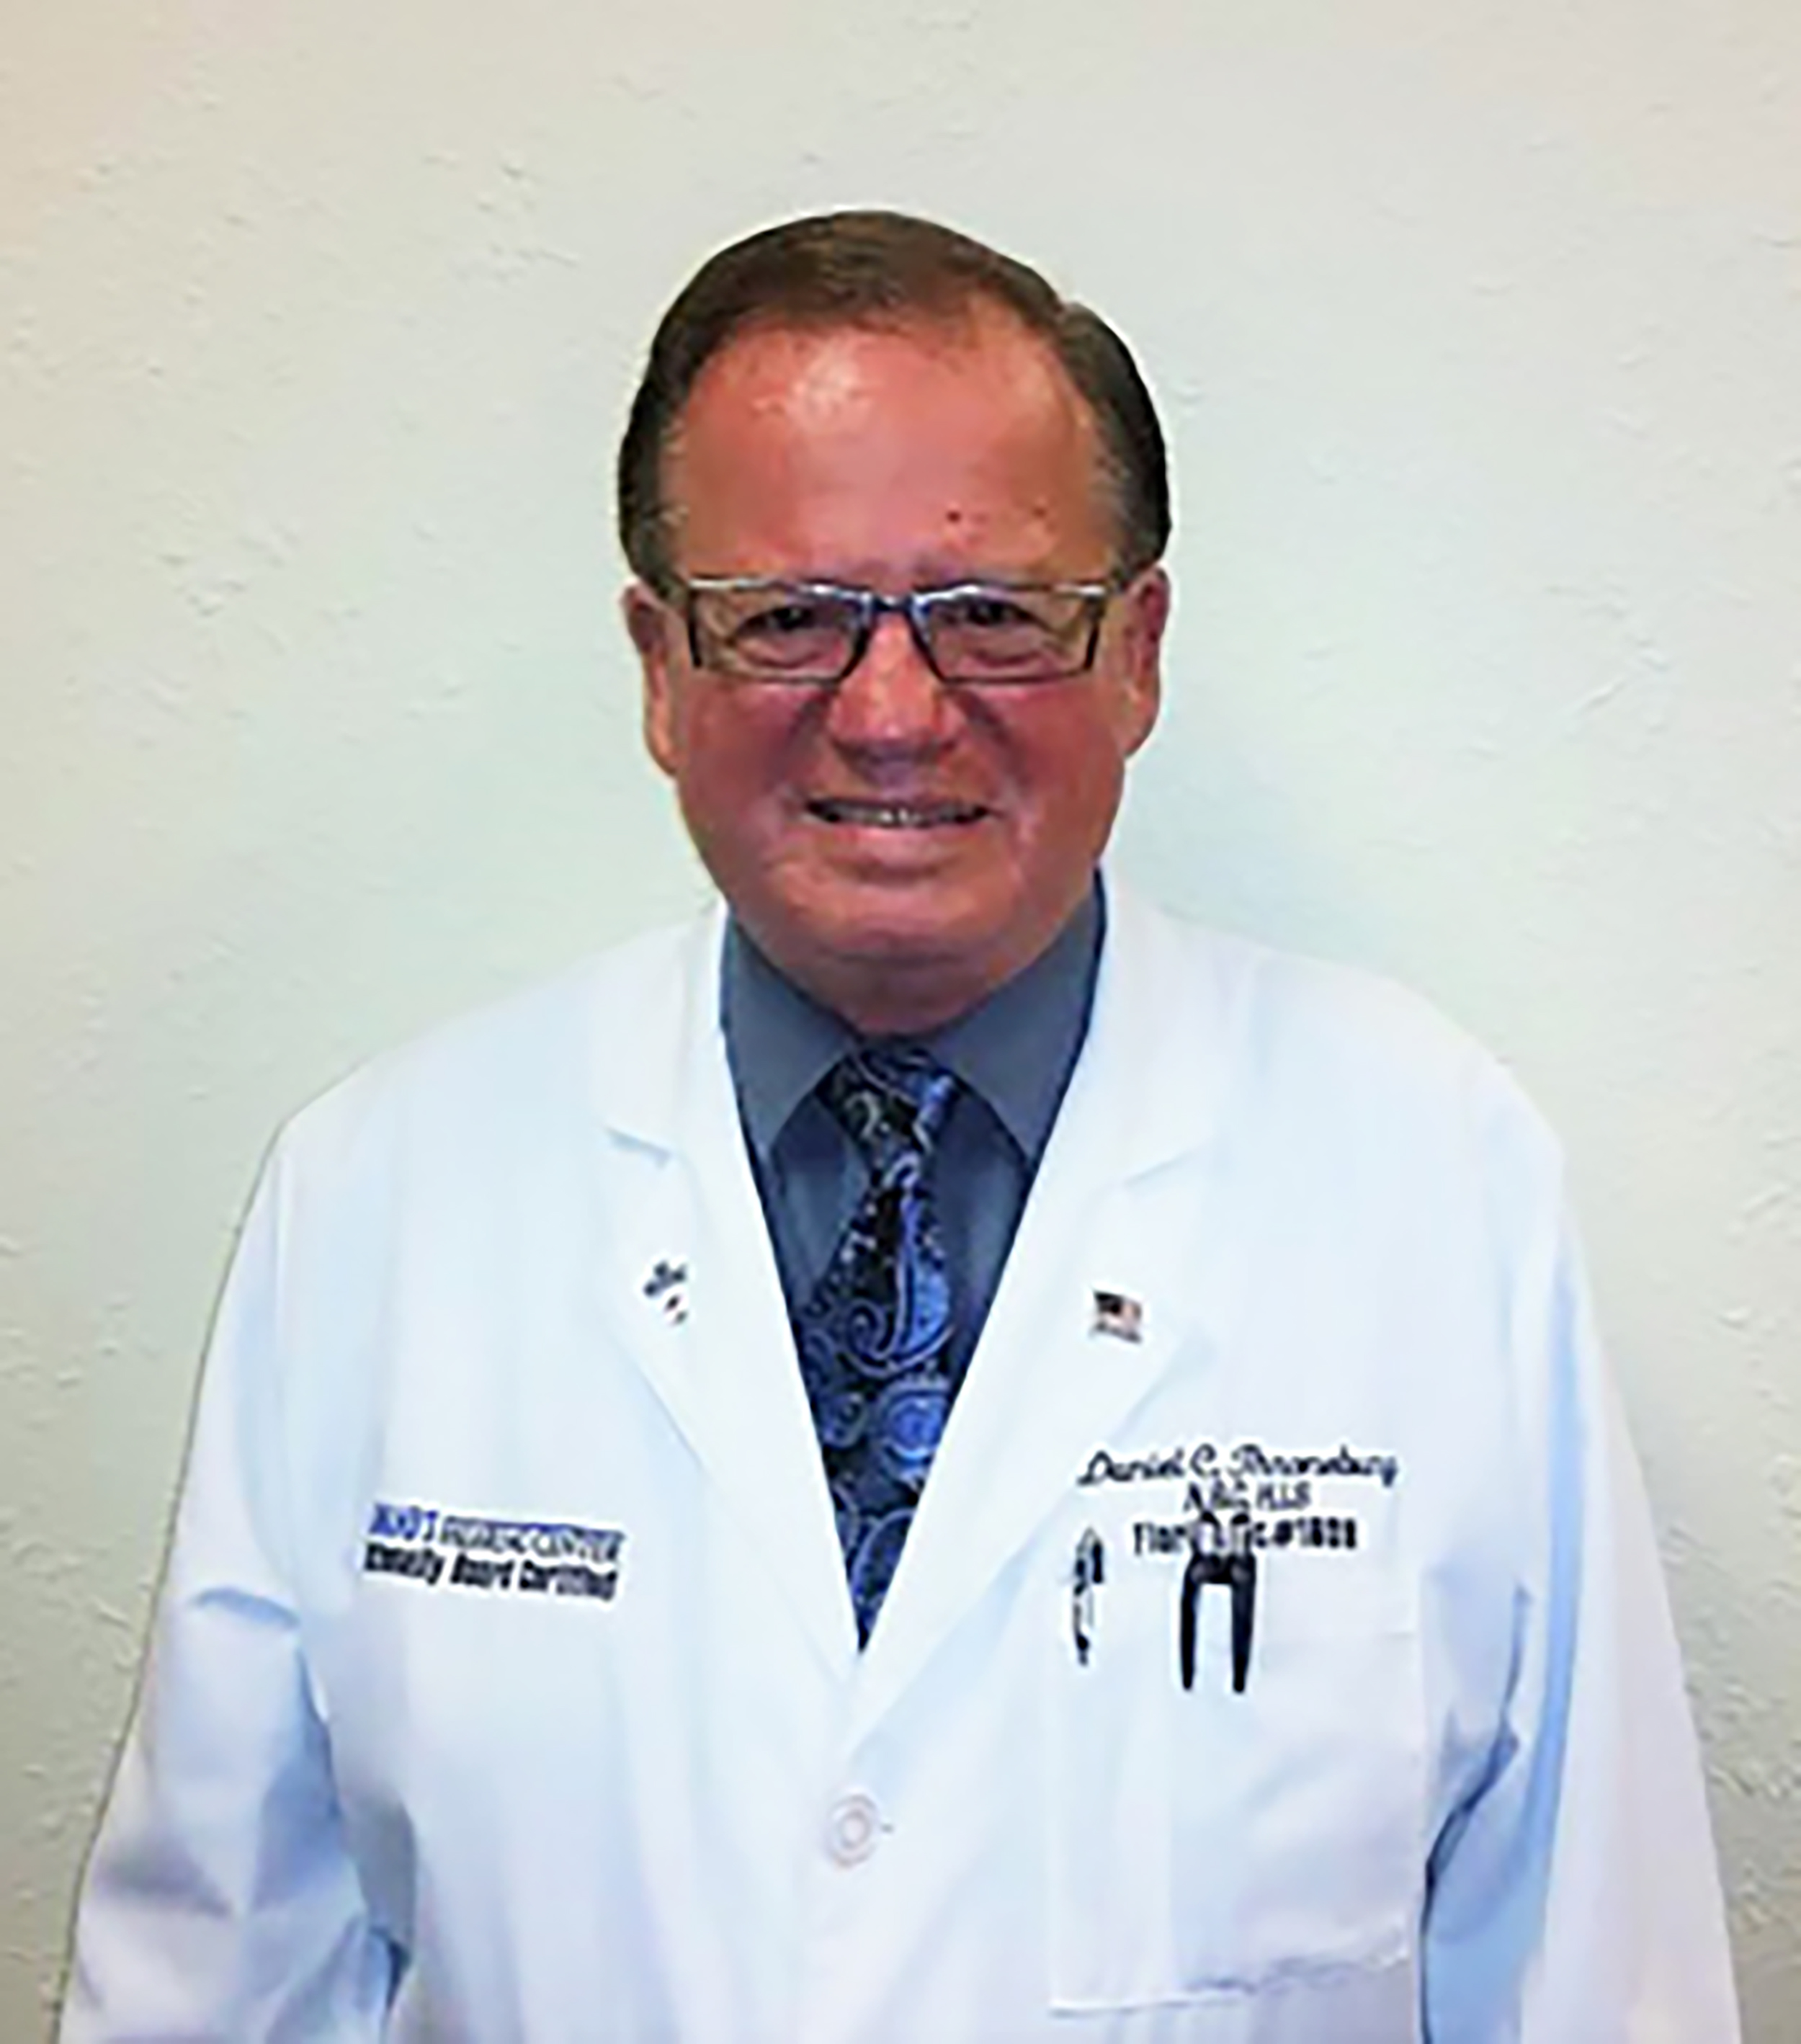 Our Hearing Aid Specialists. Daniel C. Throneburg, H.A.S.